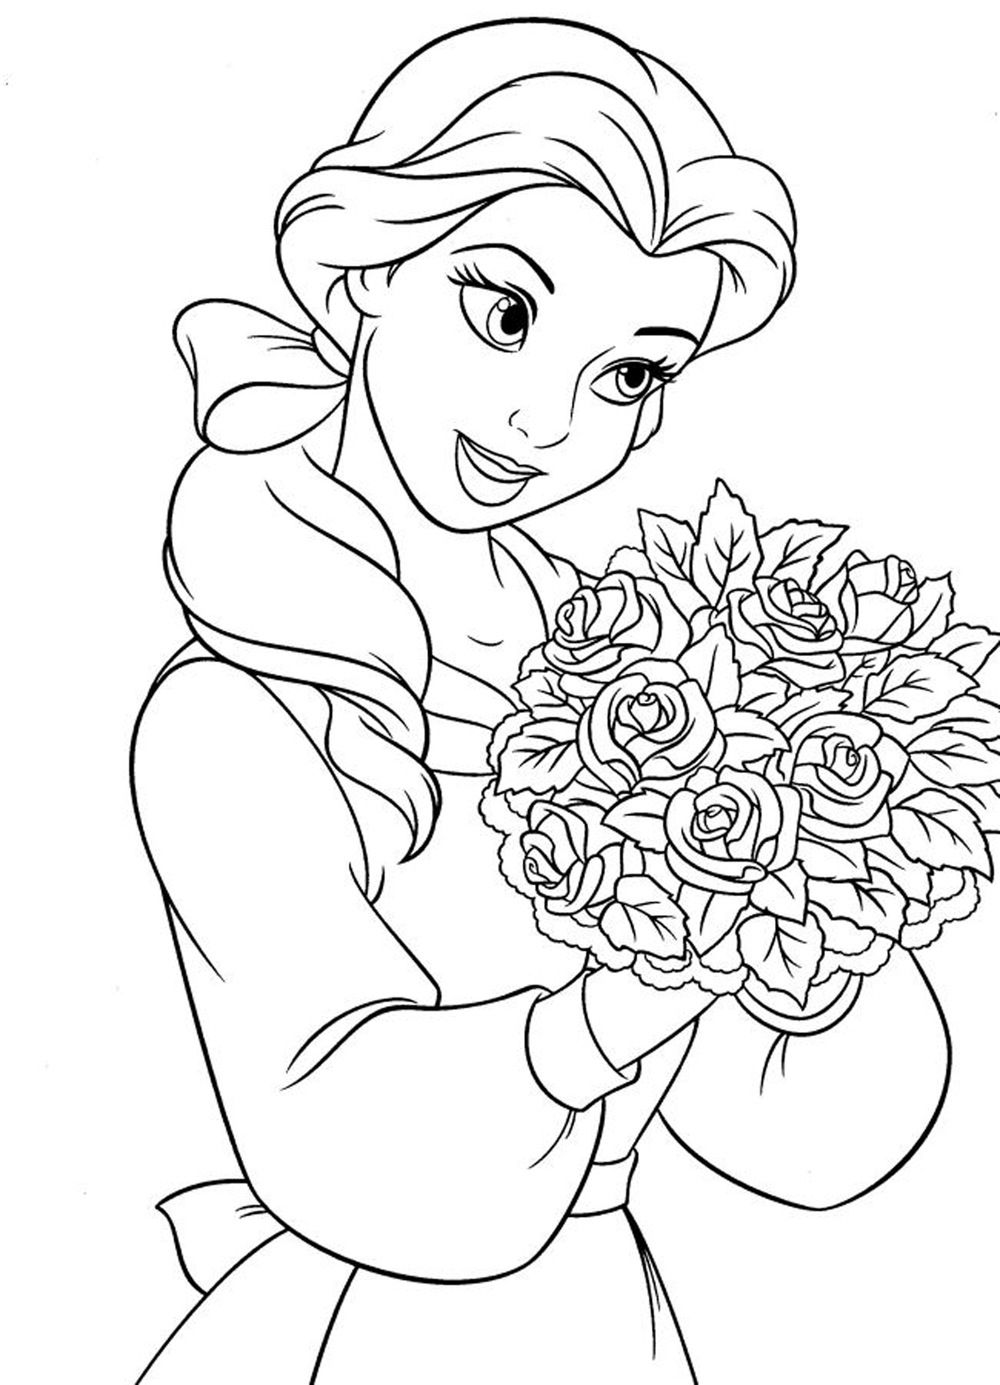 coloring printouts for girls free coloring pages for girls fotolip coloring printouts girls for